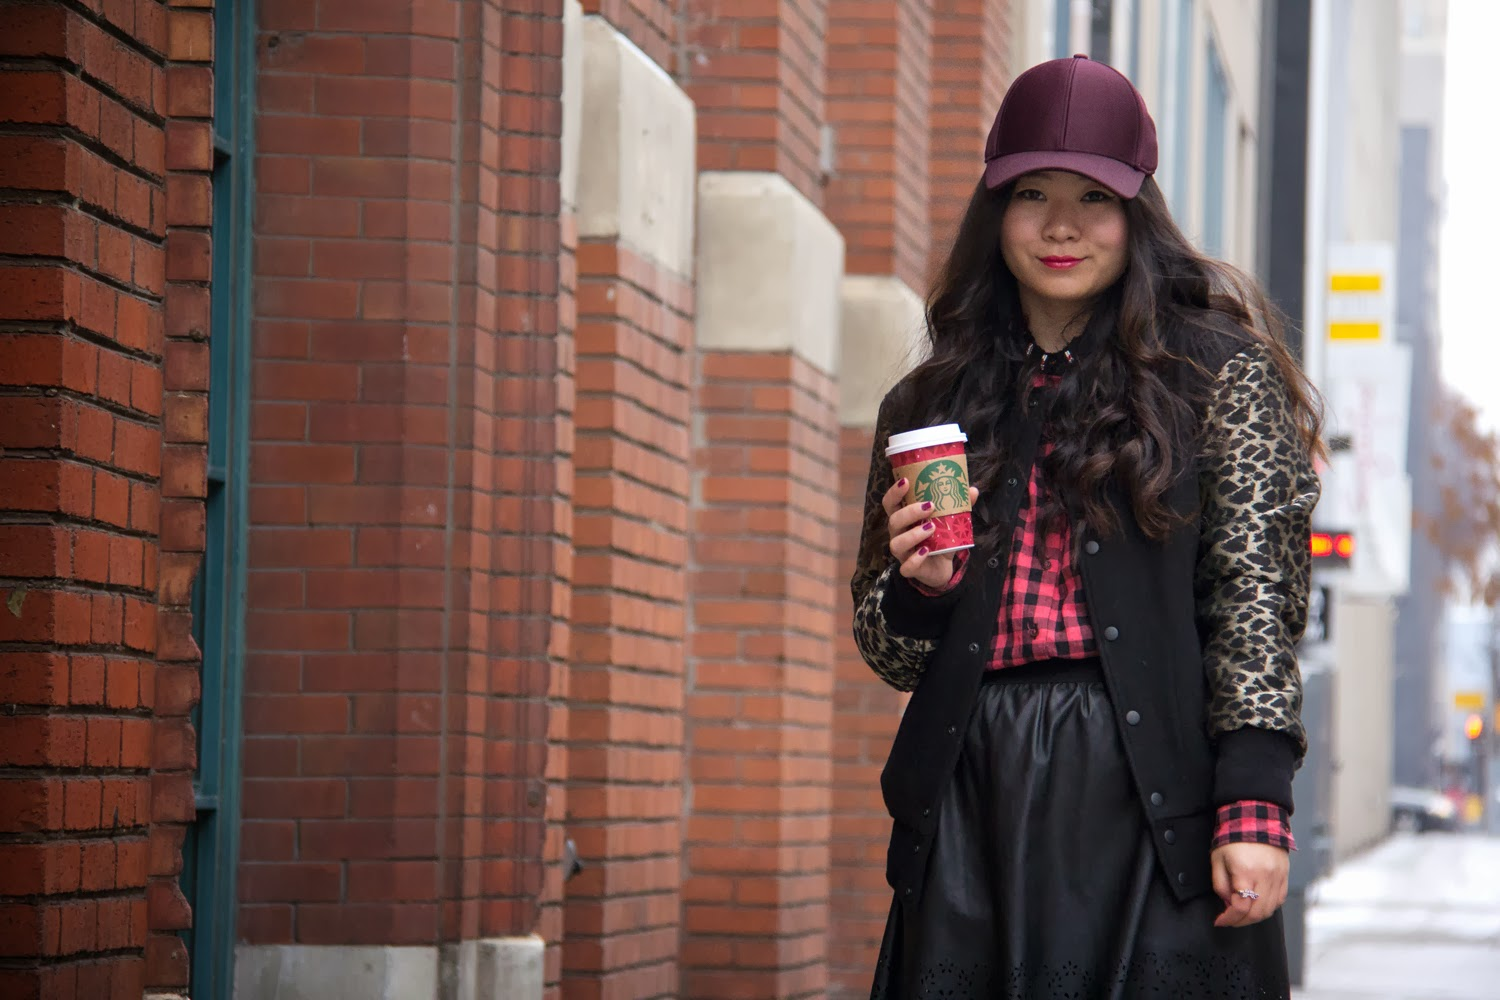 Burgundy-Hat, Checkered-Shirt, Varsity-Jacket, Faux-Leather-Skirt